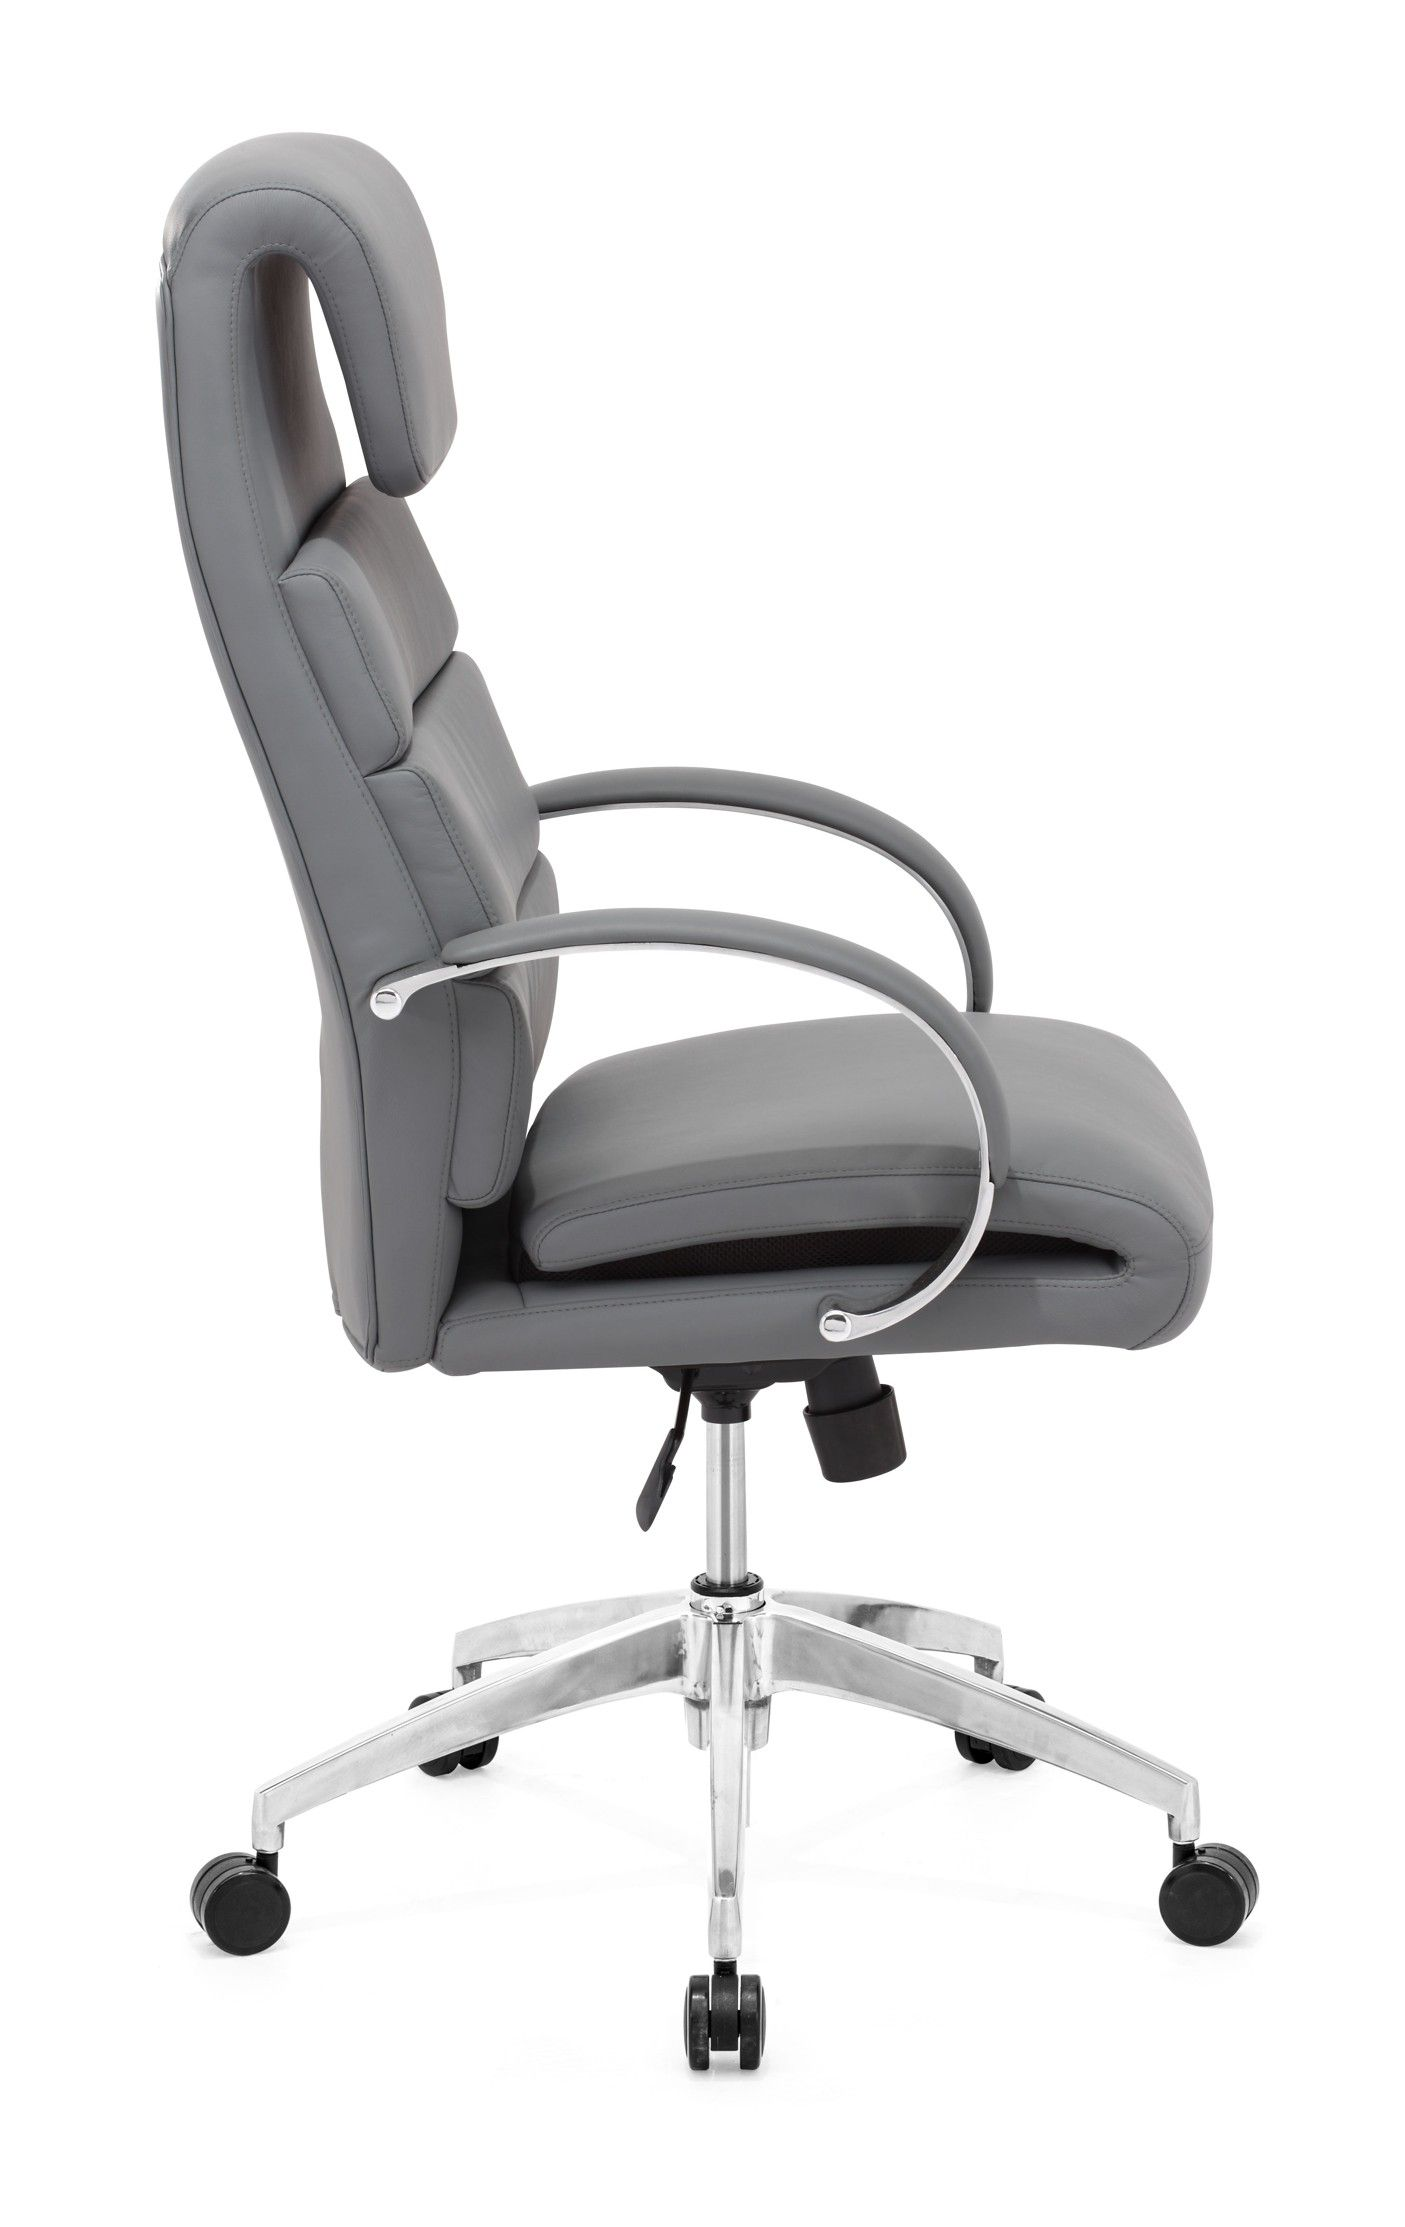 Modern ergonomic office chairs - Gray Lider Comfort Office Chair This Gray Office Chair By Zuo Modern Has An Polished Aluminum Finish And Is From Their Lider Comfort Collection